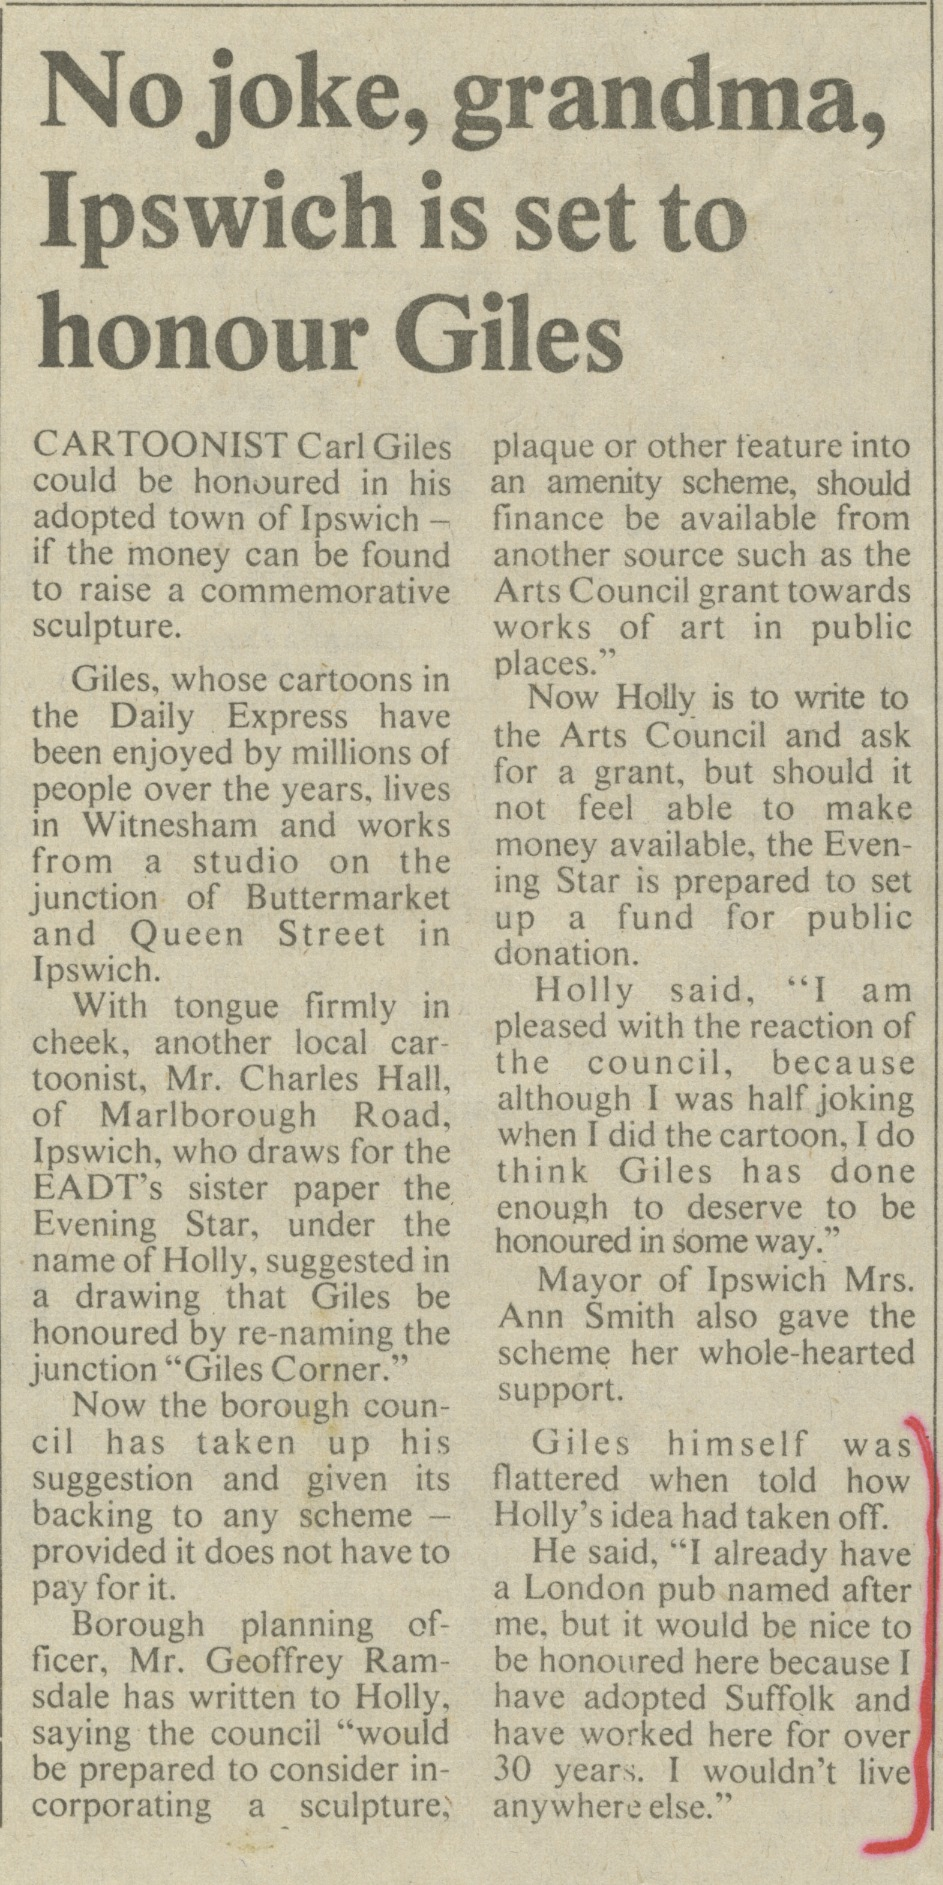 Article entitled 'No joke, grandma, Ipswich is set to honour Giles', about the proposed Giles statue in Ipswich - East Anglian Daily Times, 6 June 1981 (Image ref: GAPA0075)